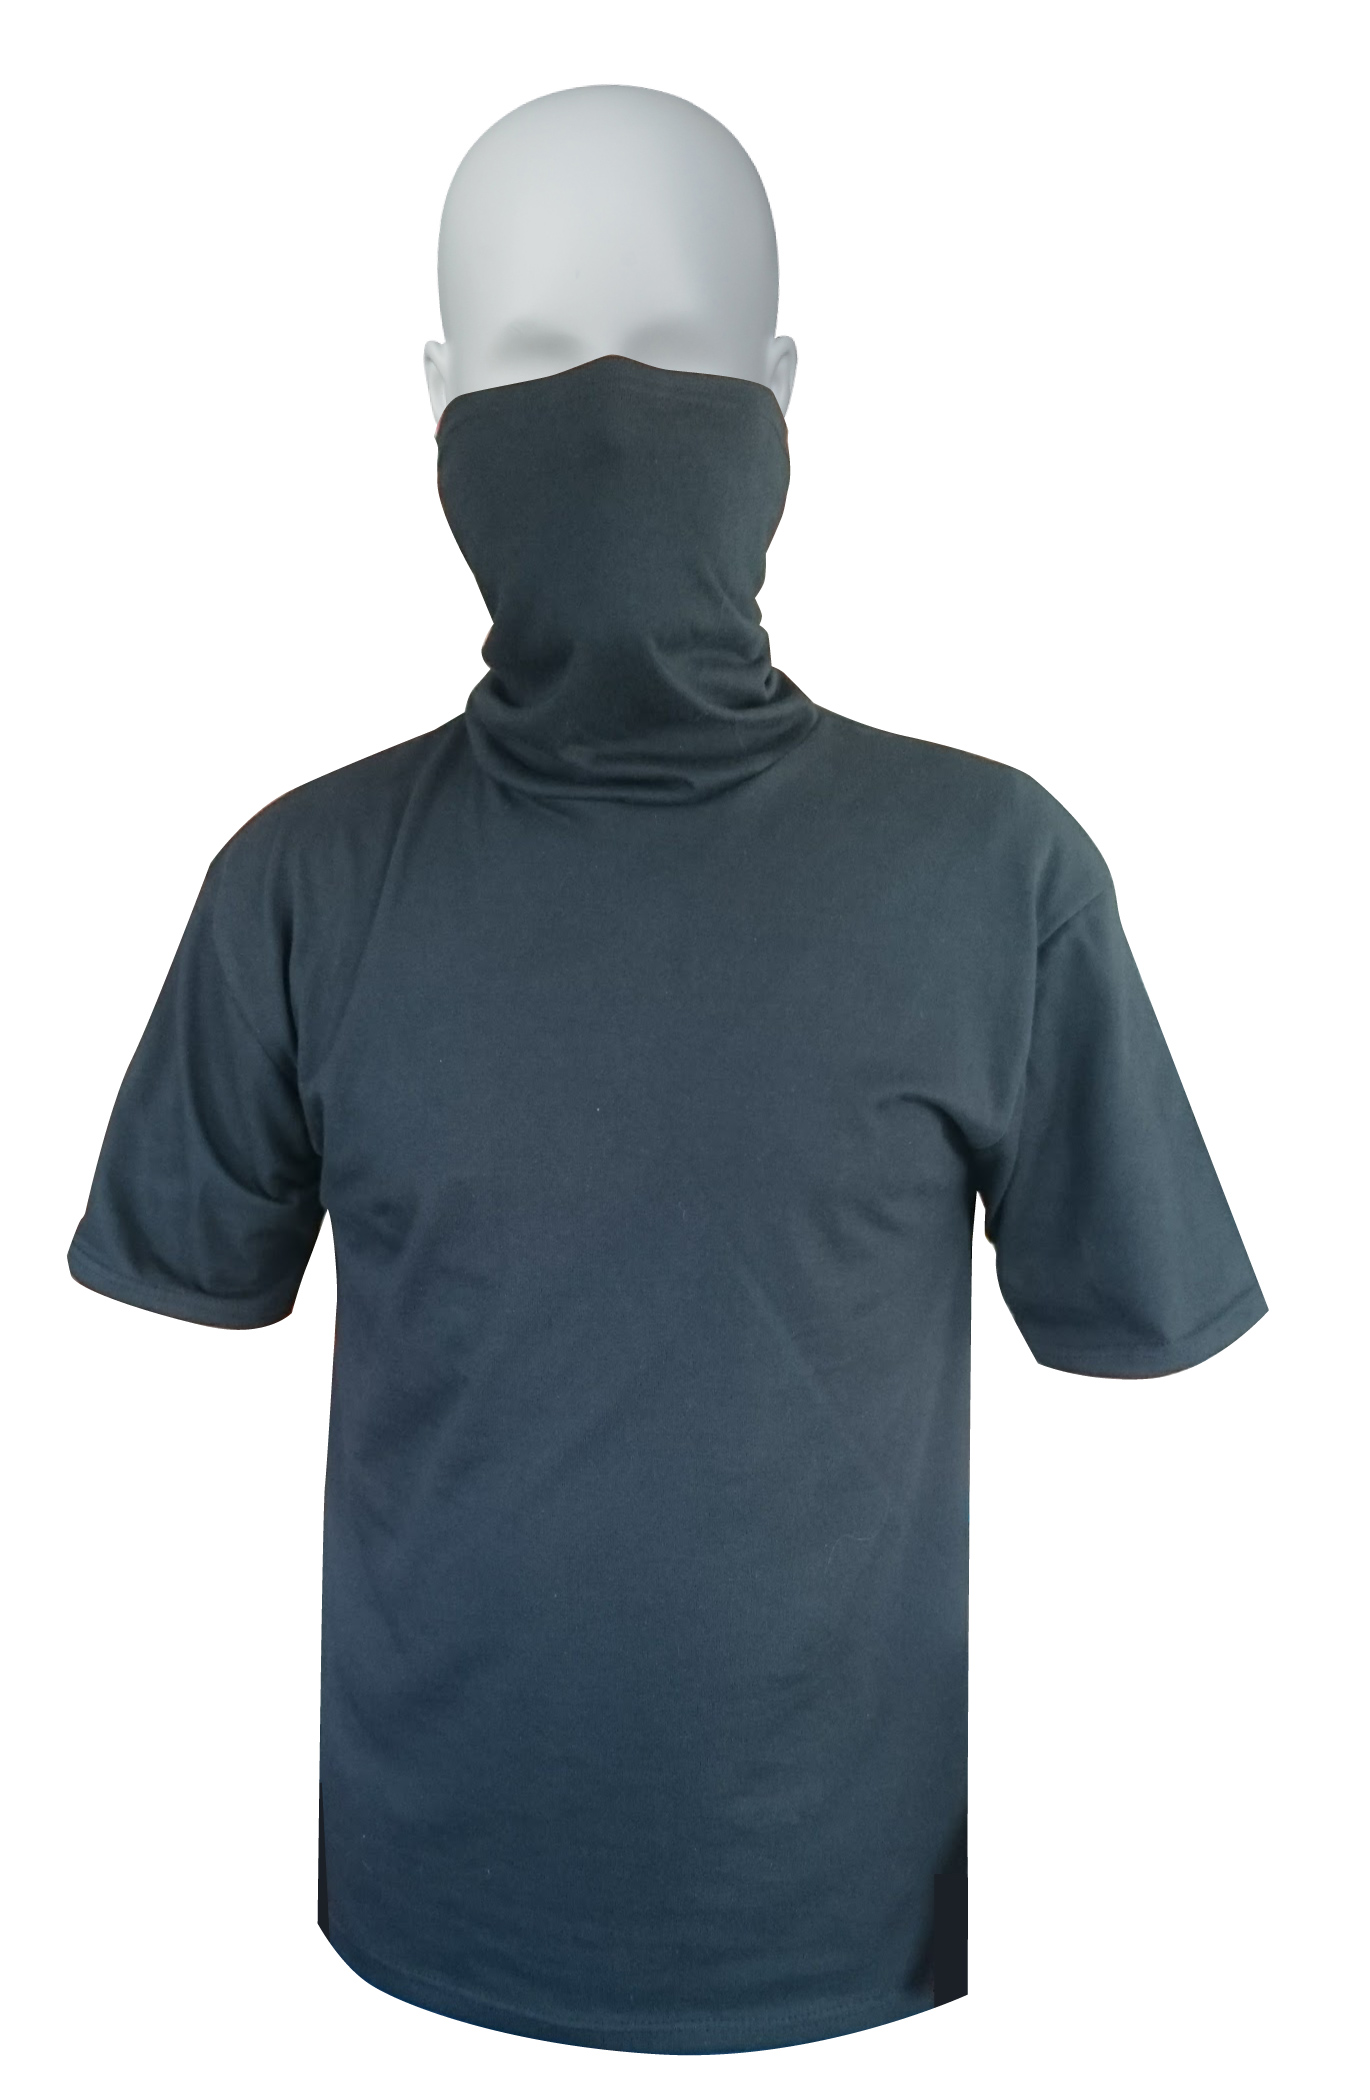 100% cotton ring-spun Unisex Gaiter Neck Tee